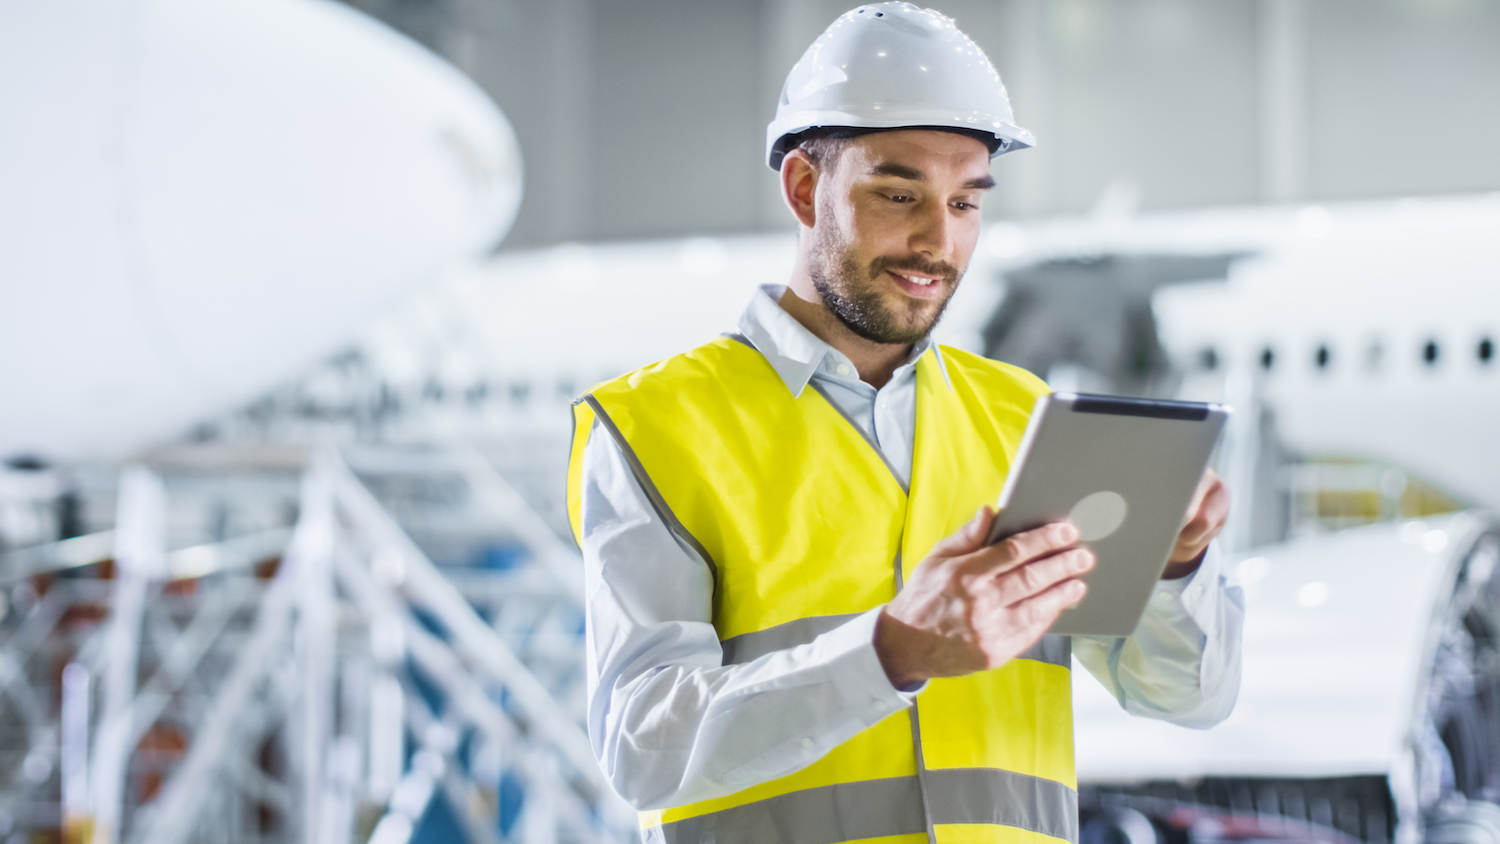 man in hard hat wearing yellow vest looking at tablet